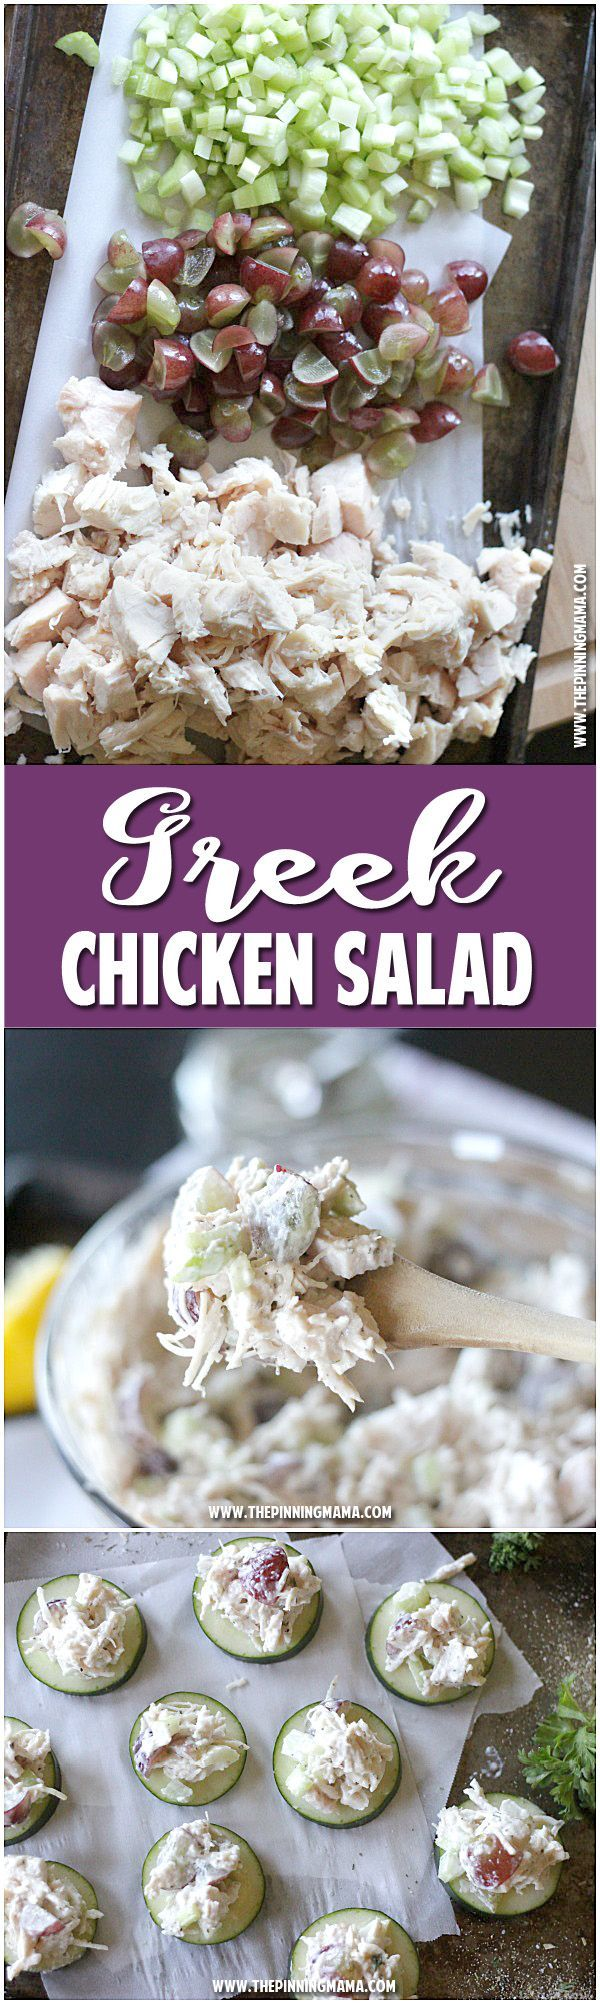 Greek Chicken Salad Recipe - This is AMAZING! Recipe includes directions to make it Whole30 compliant, paleo, gluten free, dairy free, and low carb! I didn't know healthy food tasted this good! (Gluten Free Recipes For Diabetics)